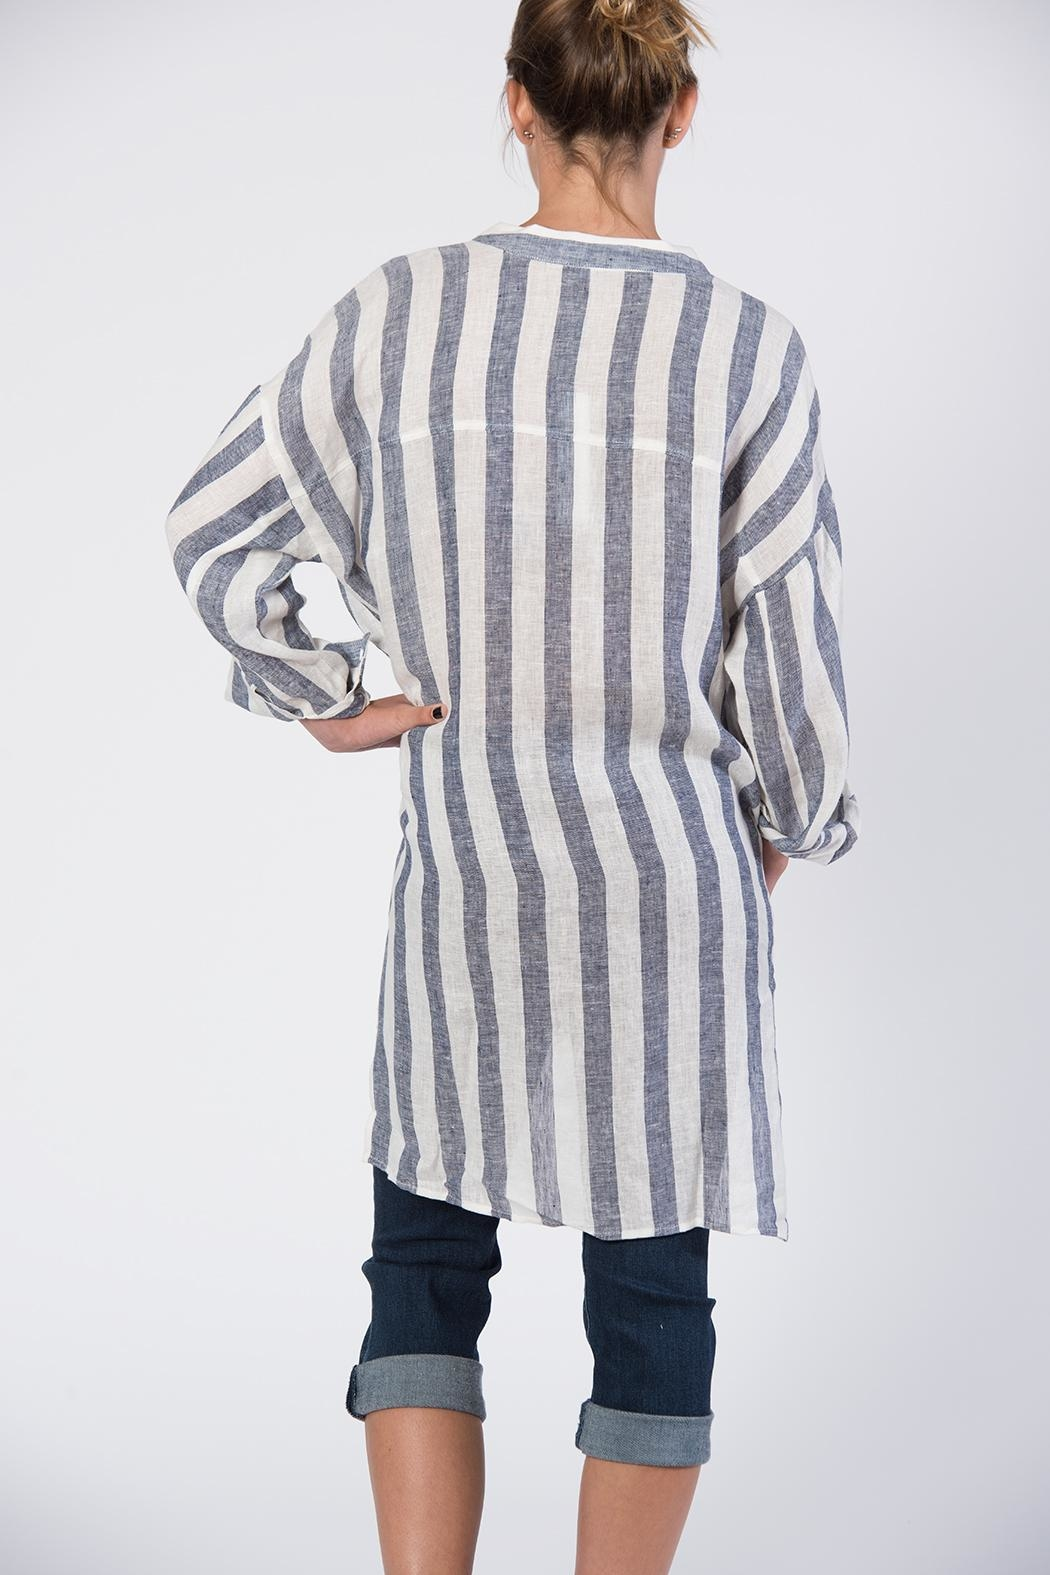 BEULAH STYLE Blue & White Striped Top - Side Cropped Image